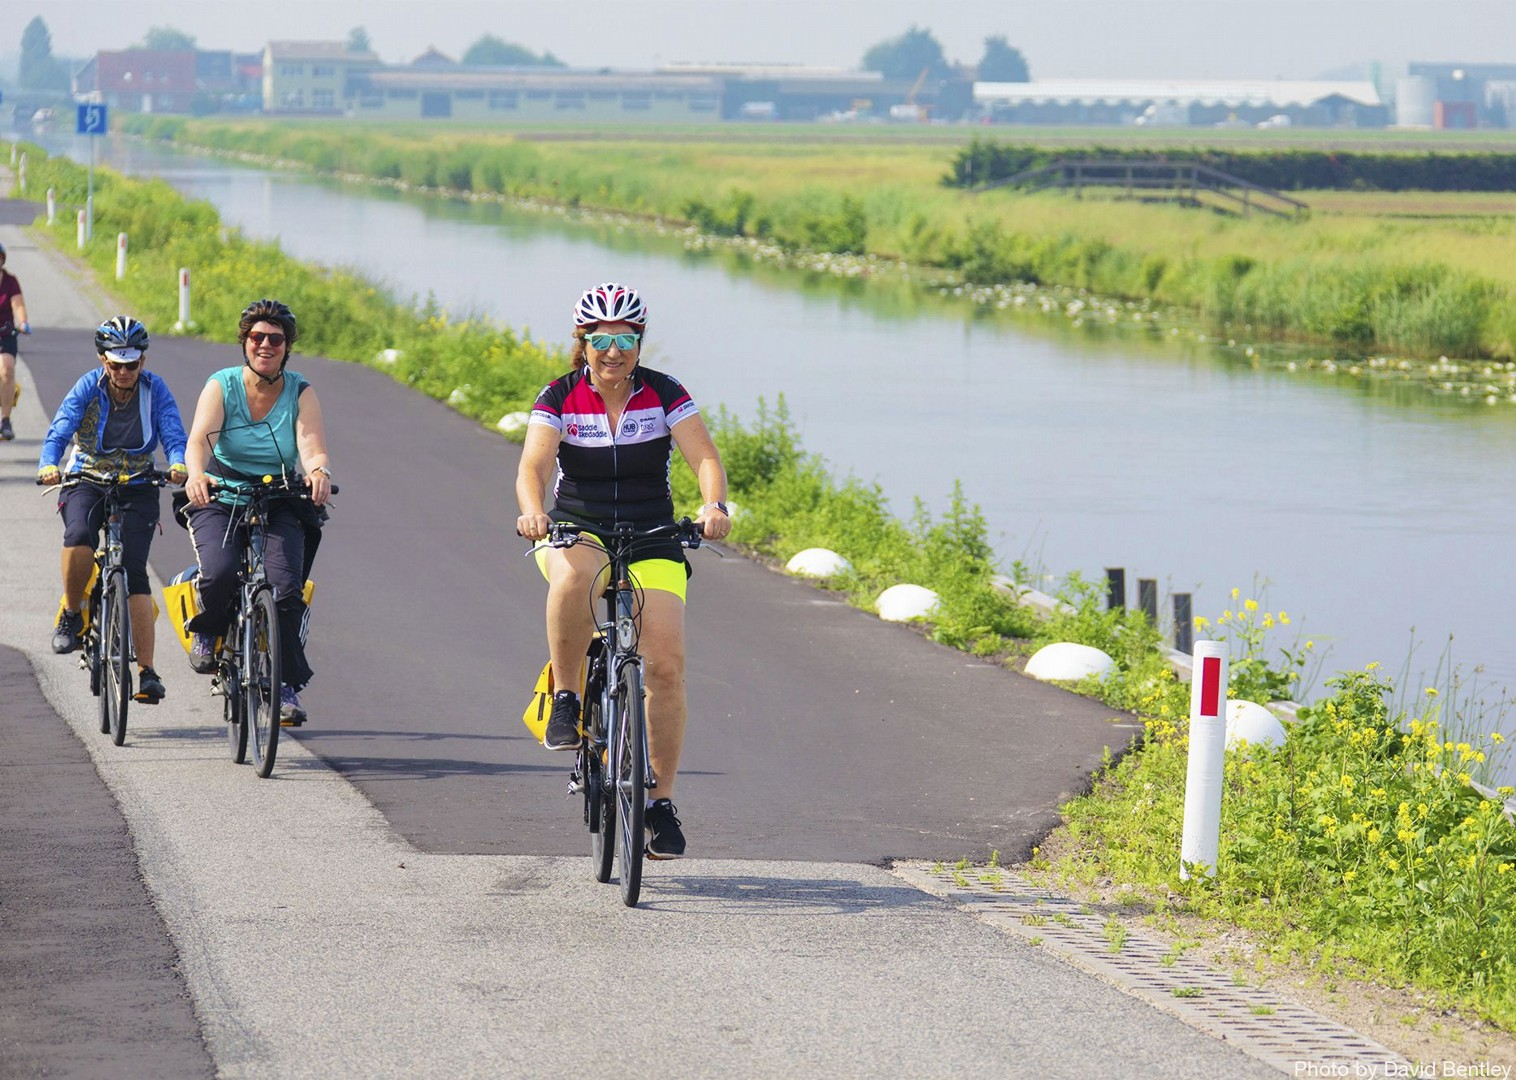 gentle-traffic-free-cycle-paths-for-all-abilities.jpg - Holland - Windmills and Golden Beaches - Bike and Barge Holiday - Leisure Cycling